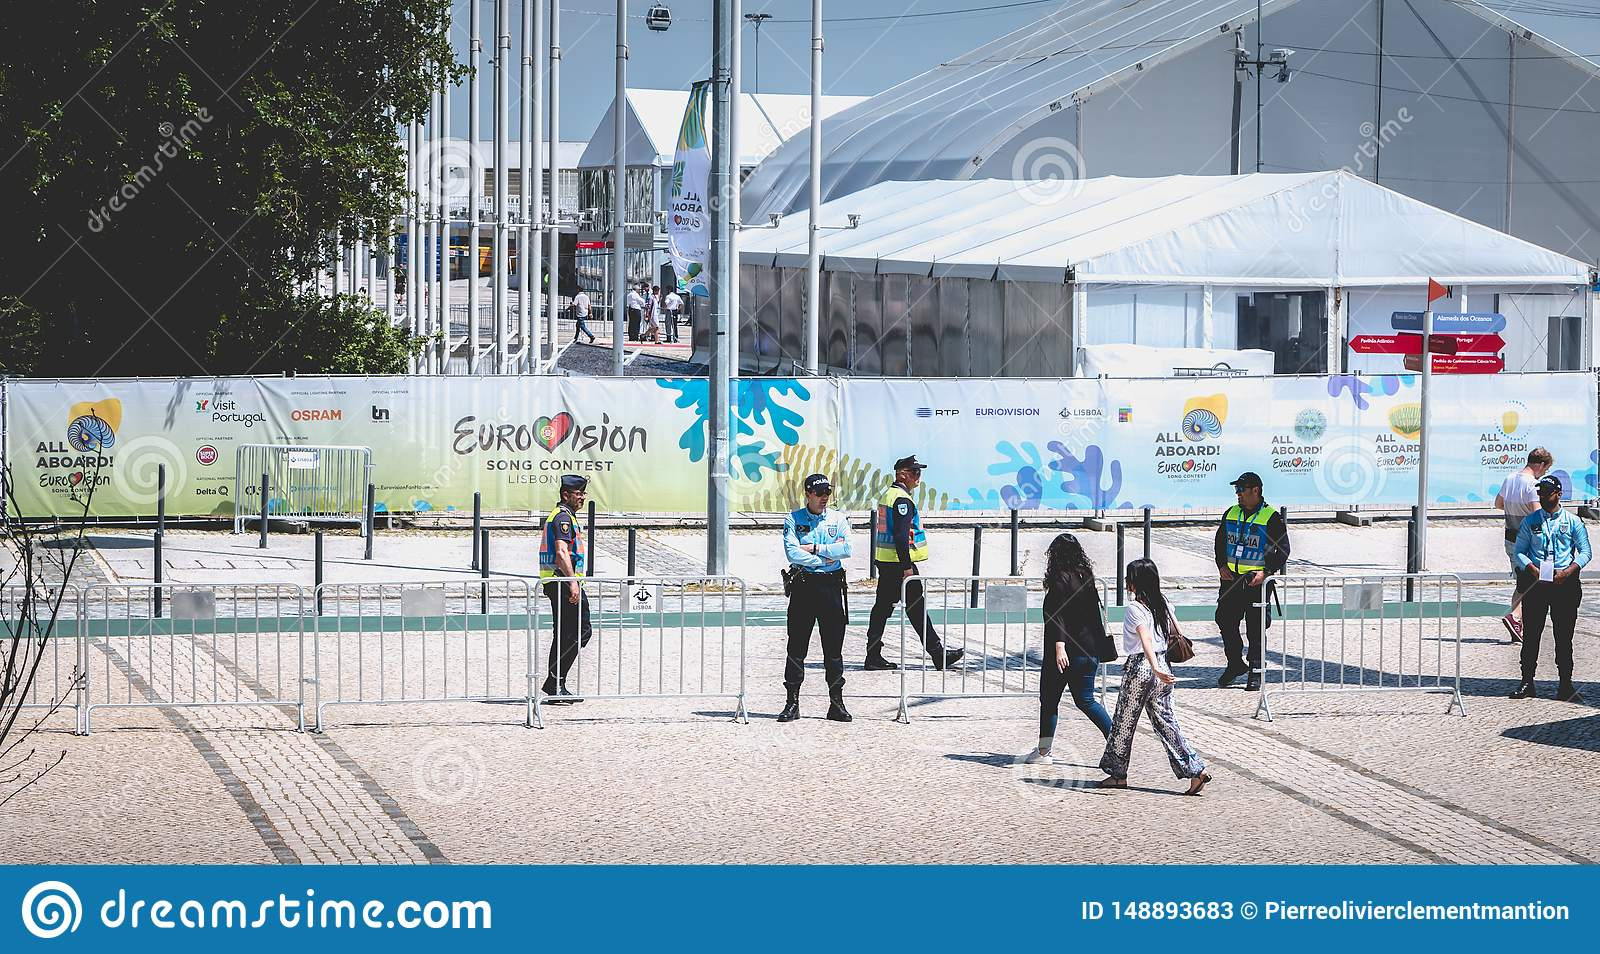 Security team monitoring the entrances to 2018 Eurovision in Lisbon, Portugal